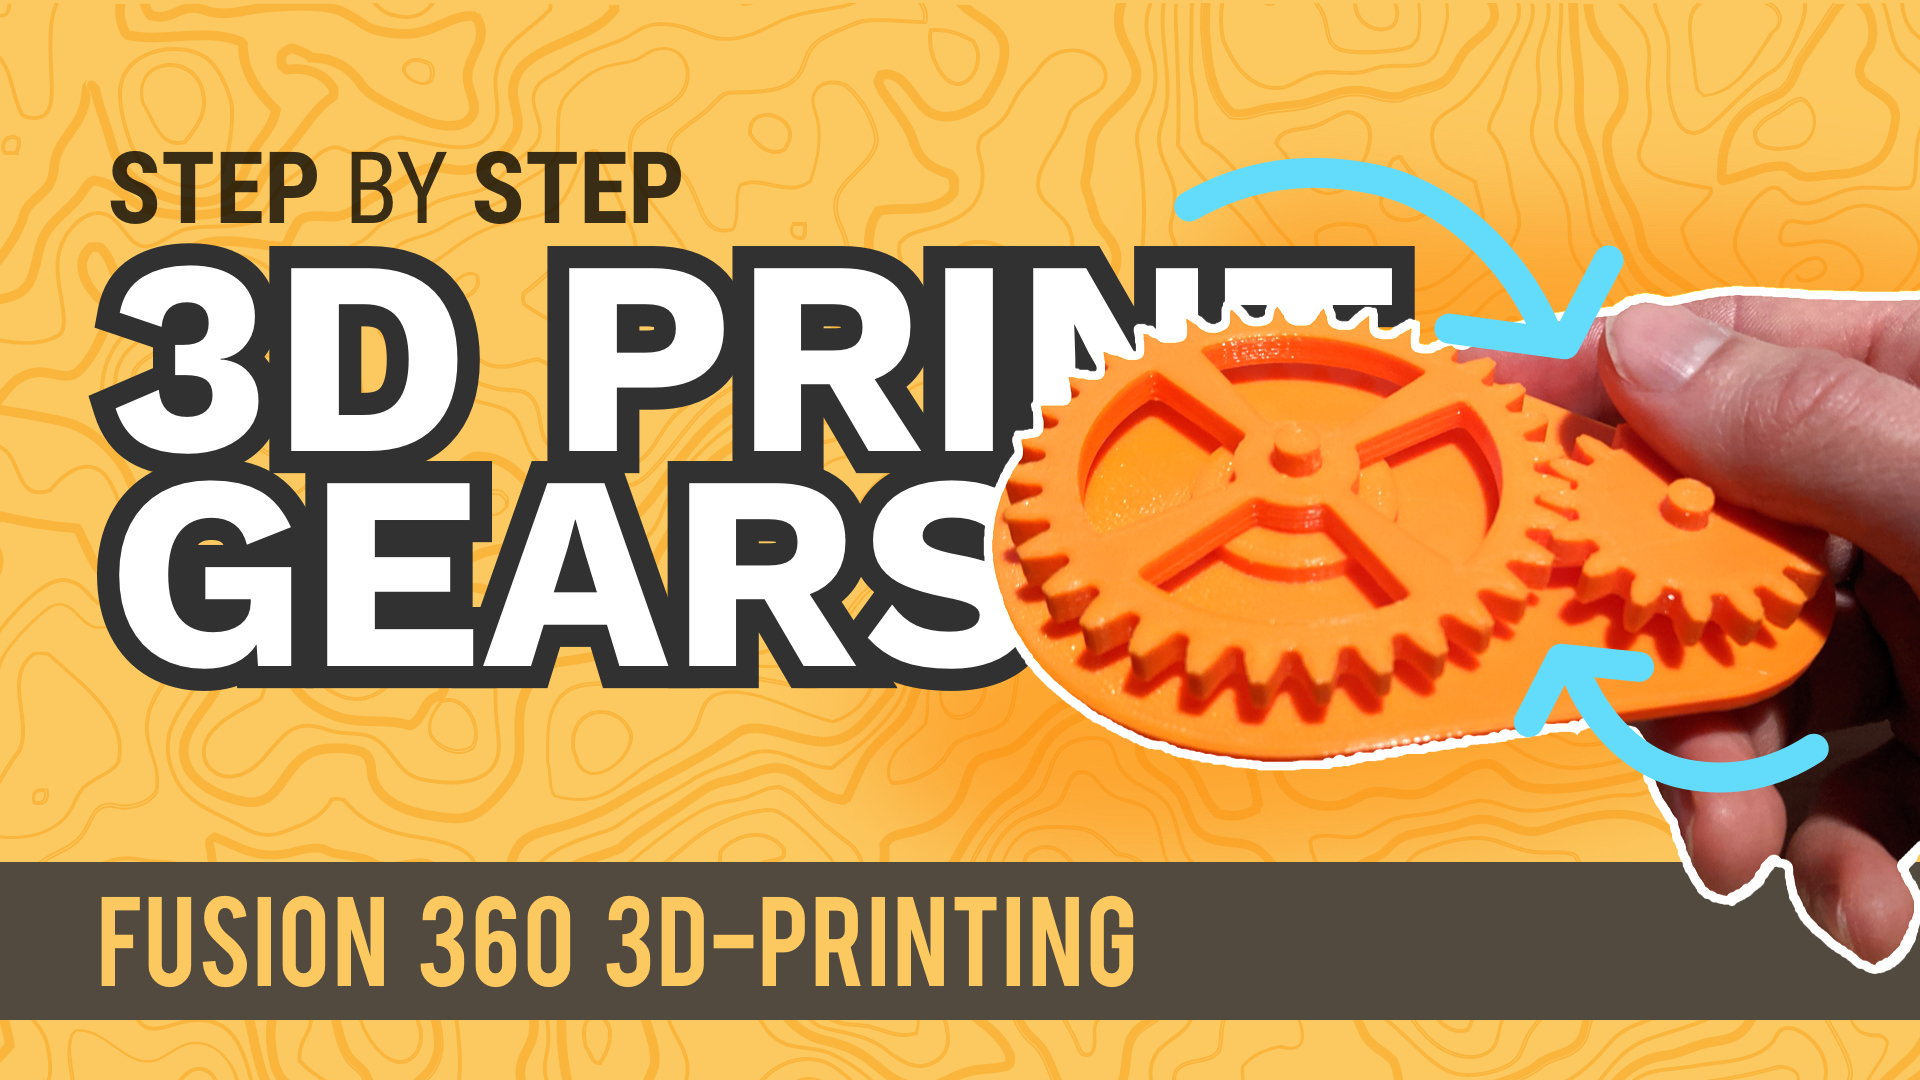 3D Print gears created in Fusion 360